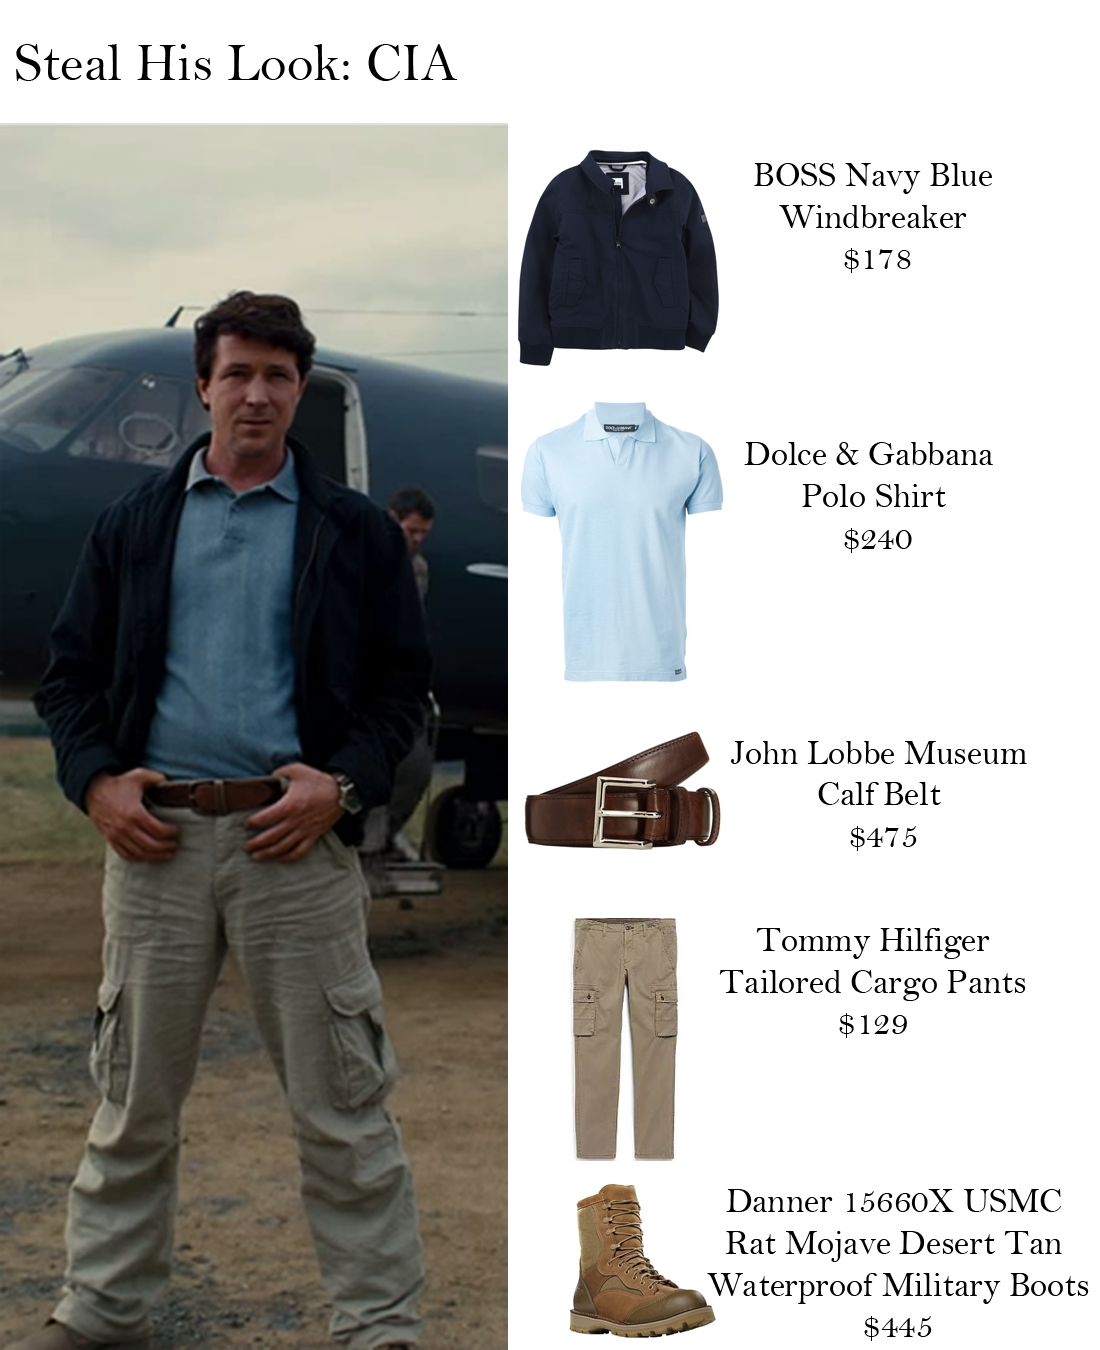 Steal His Looks: CIA | Steal Her Look